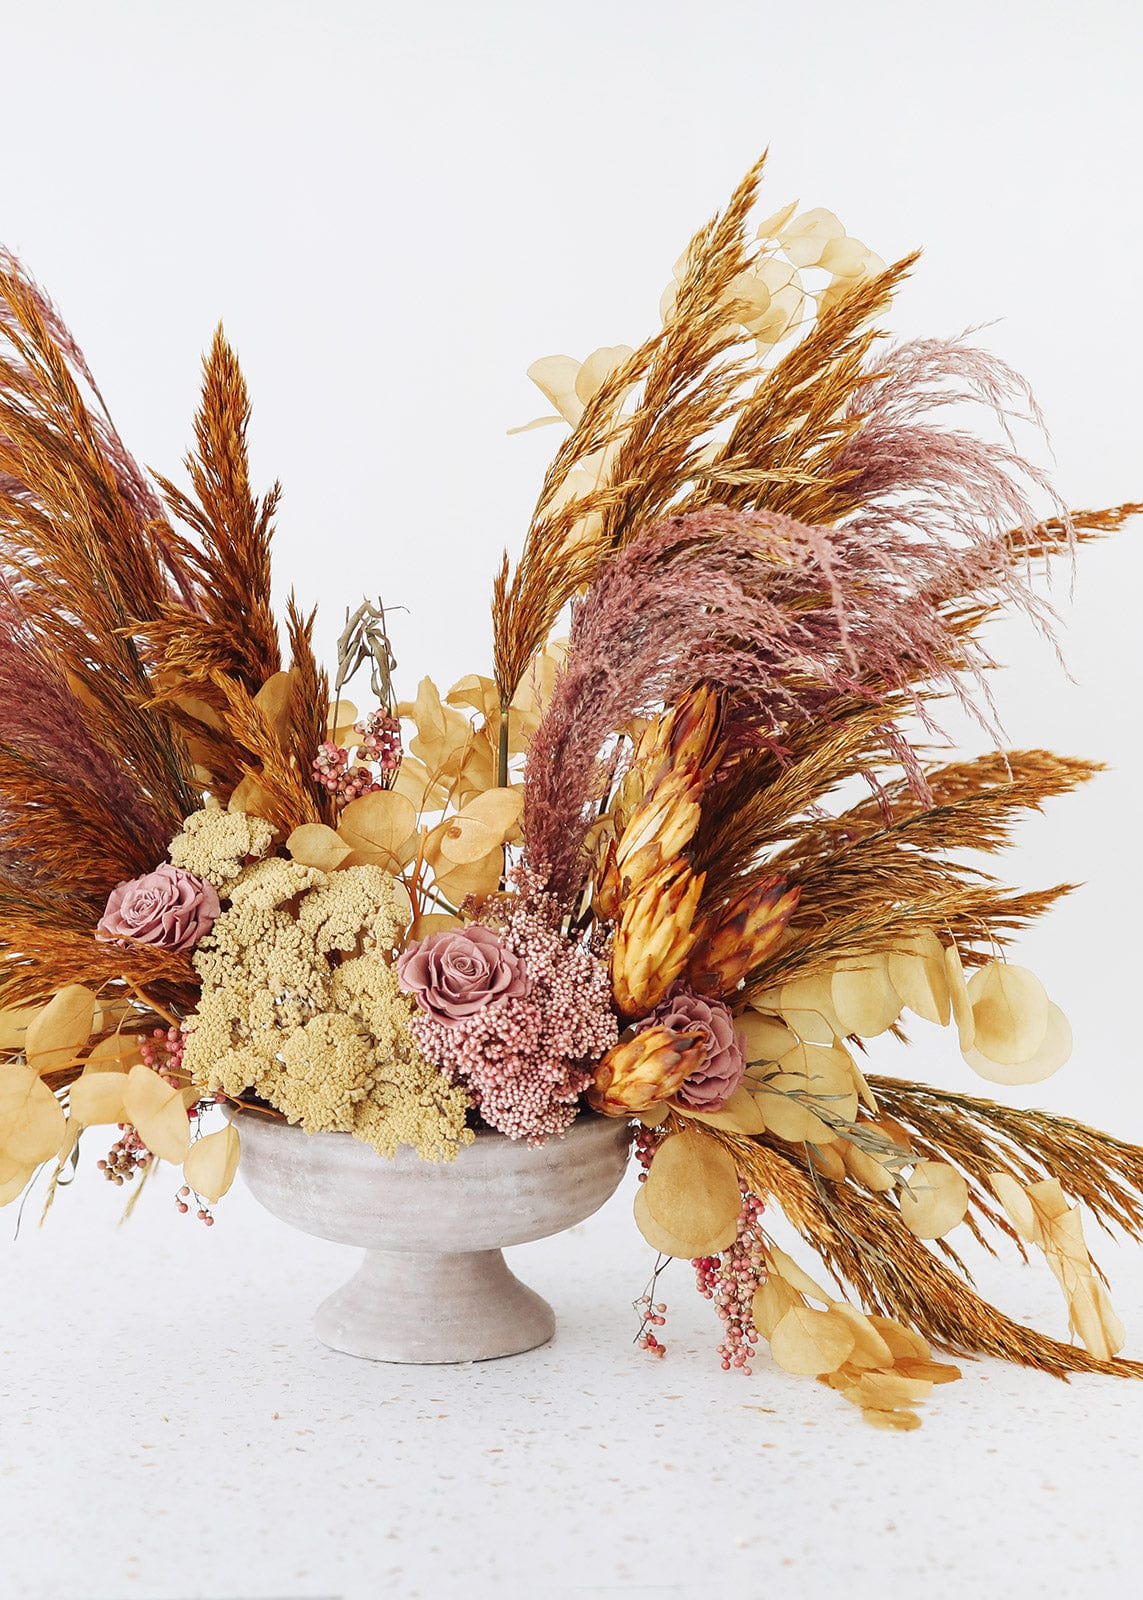 Dried Flower Arrangement with Dried Grasses